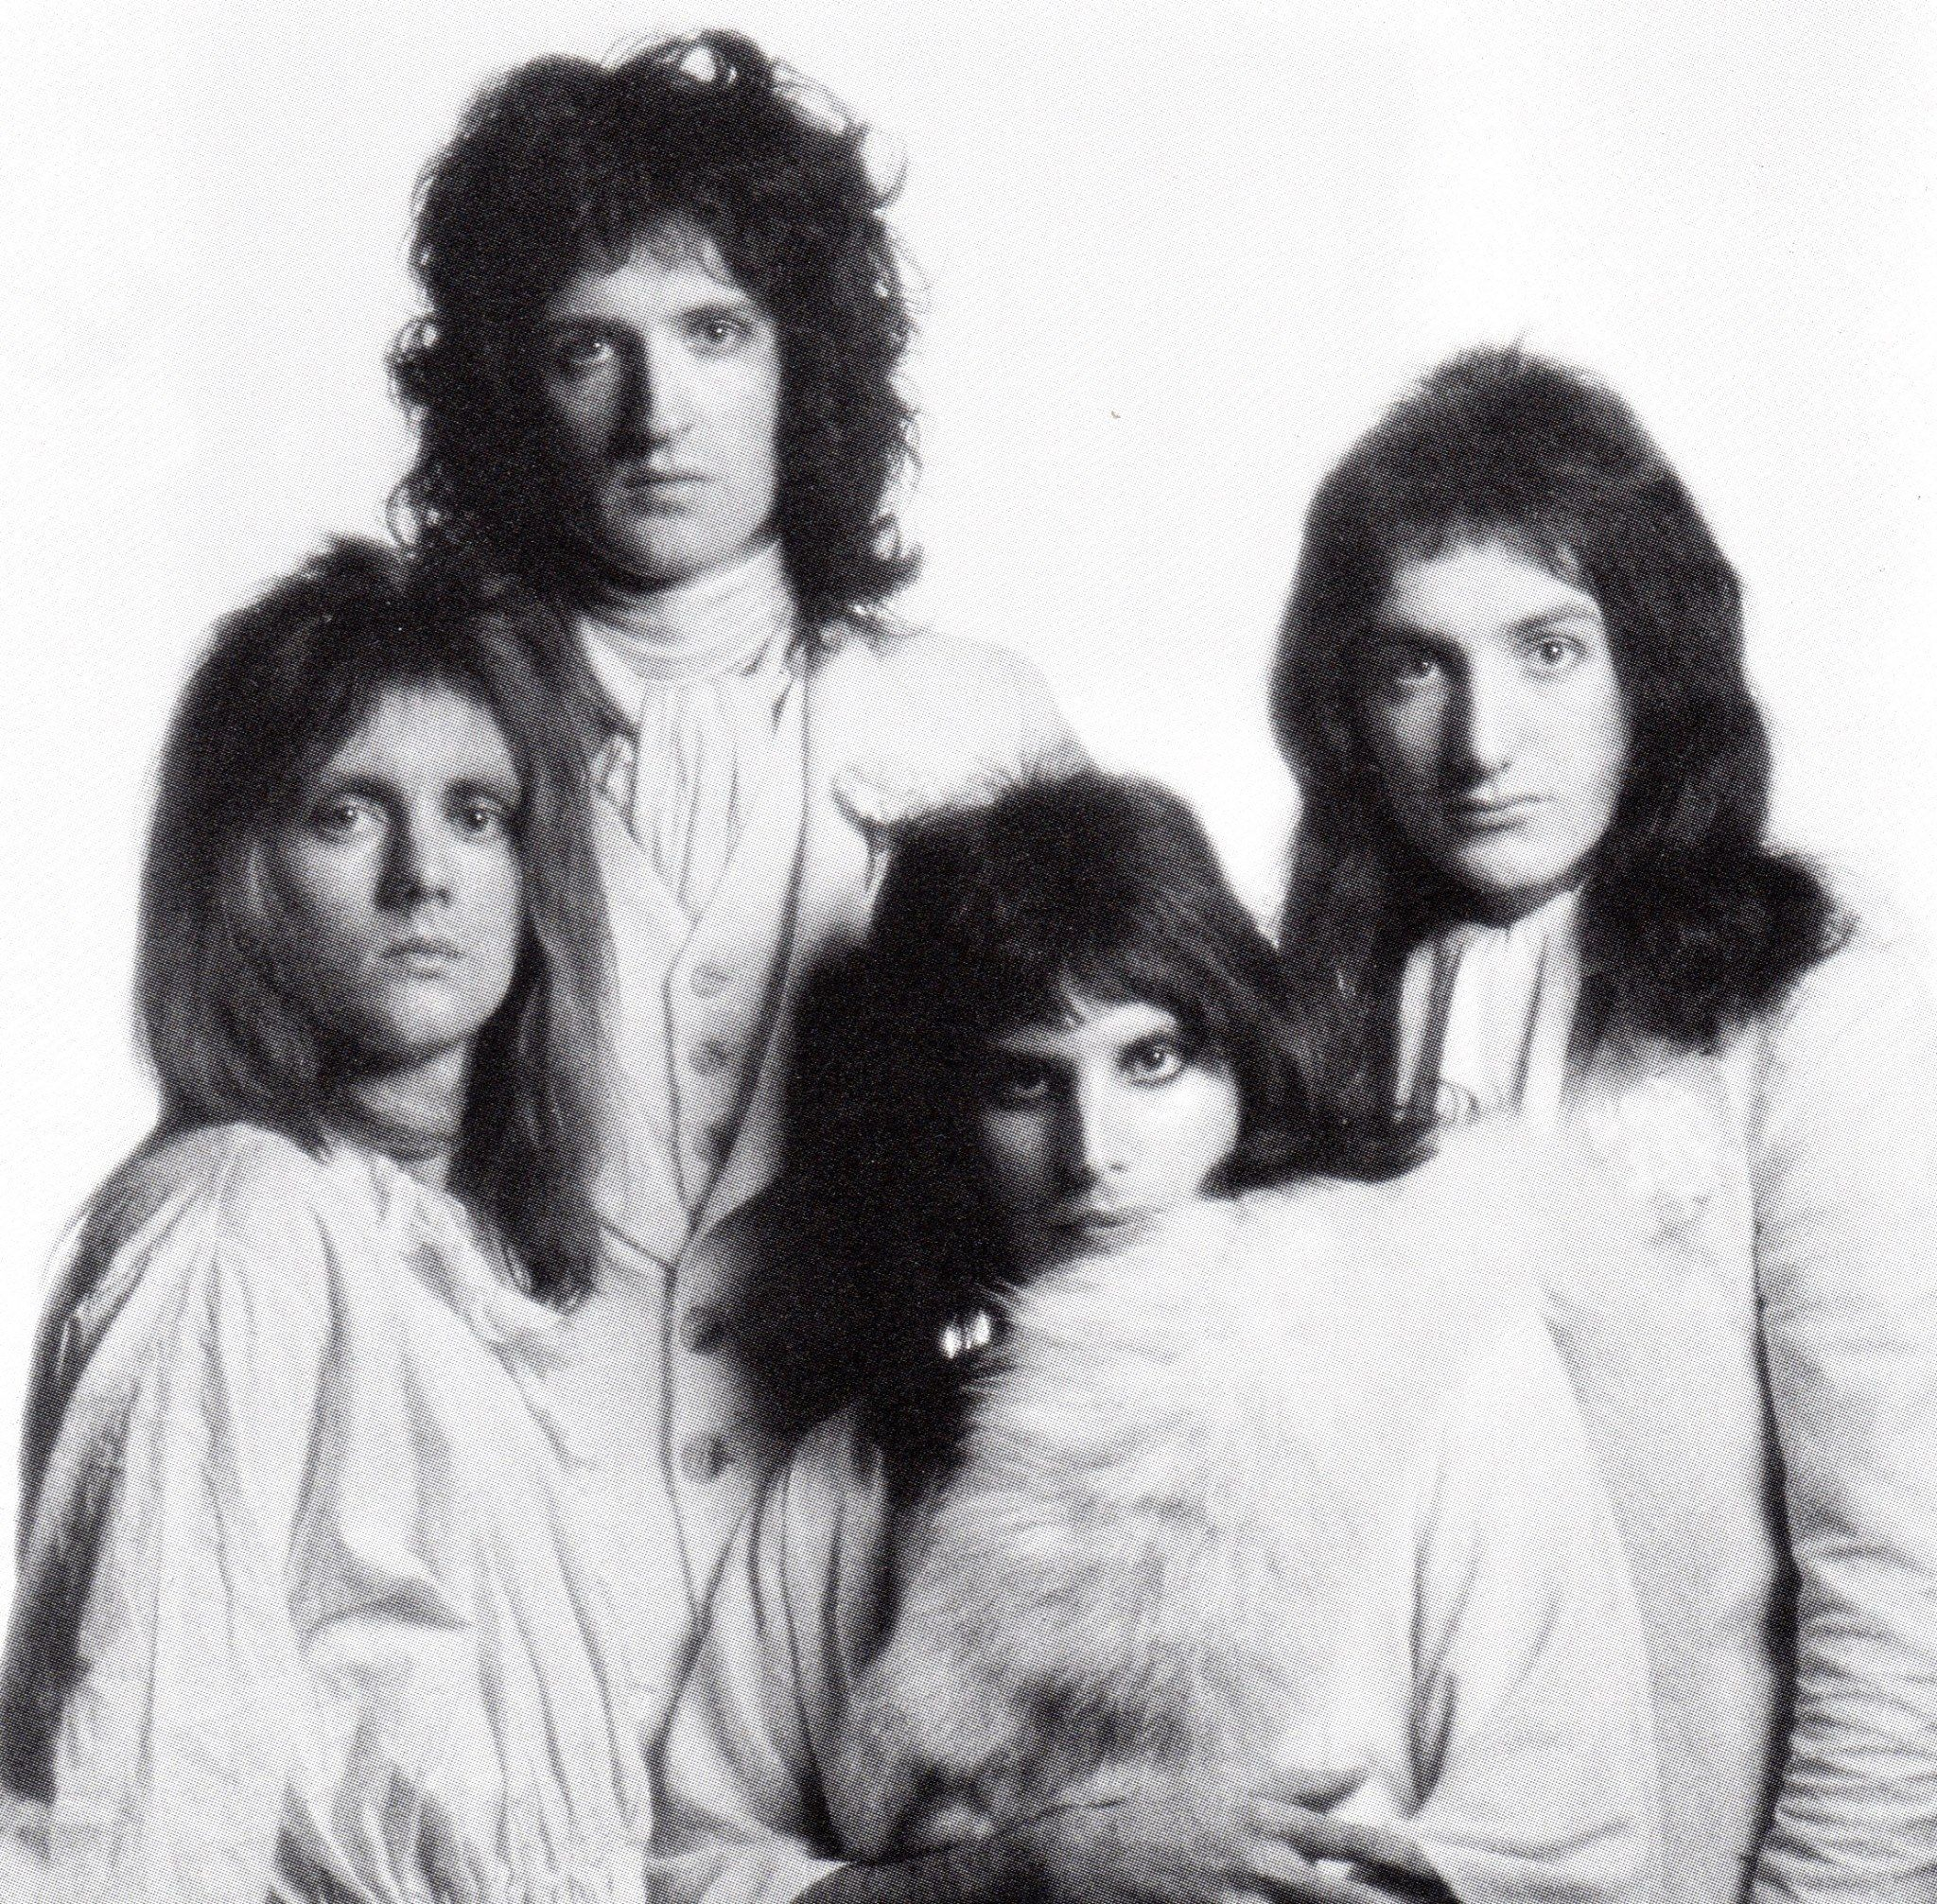 photo-session-by-mick-rock-in-november-1973-at-great-newport-street-studios.jpg (2048×2013)